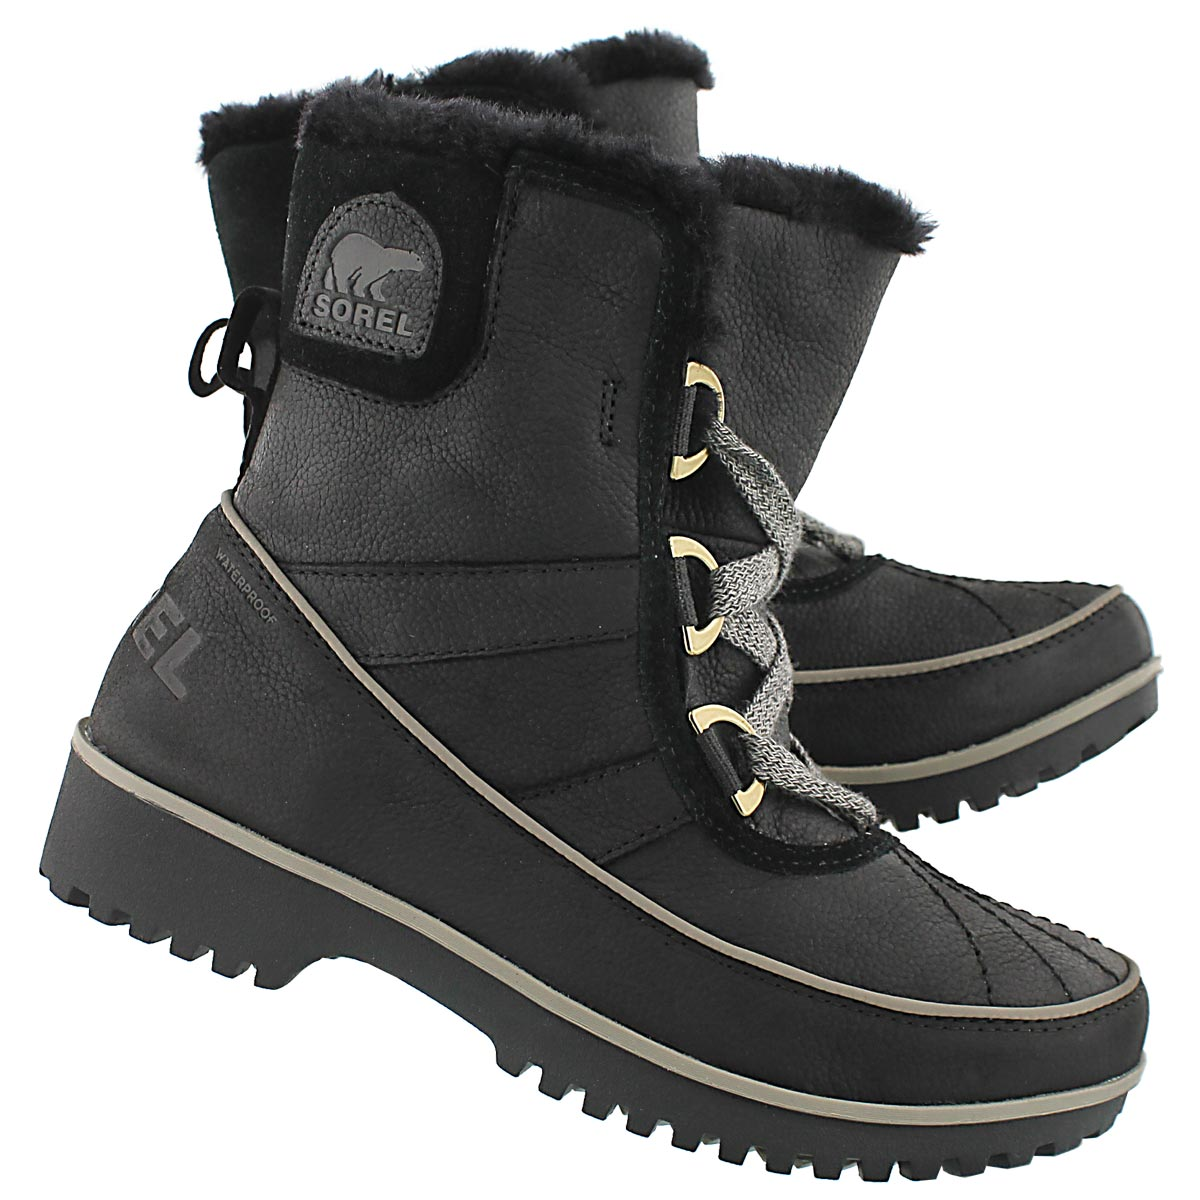 Lds Tivoli II Premium blk winter boot